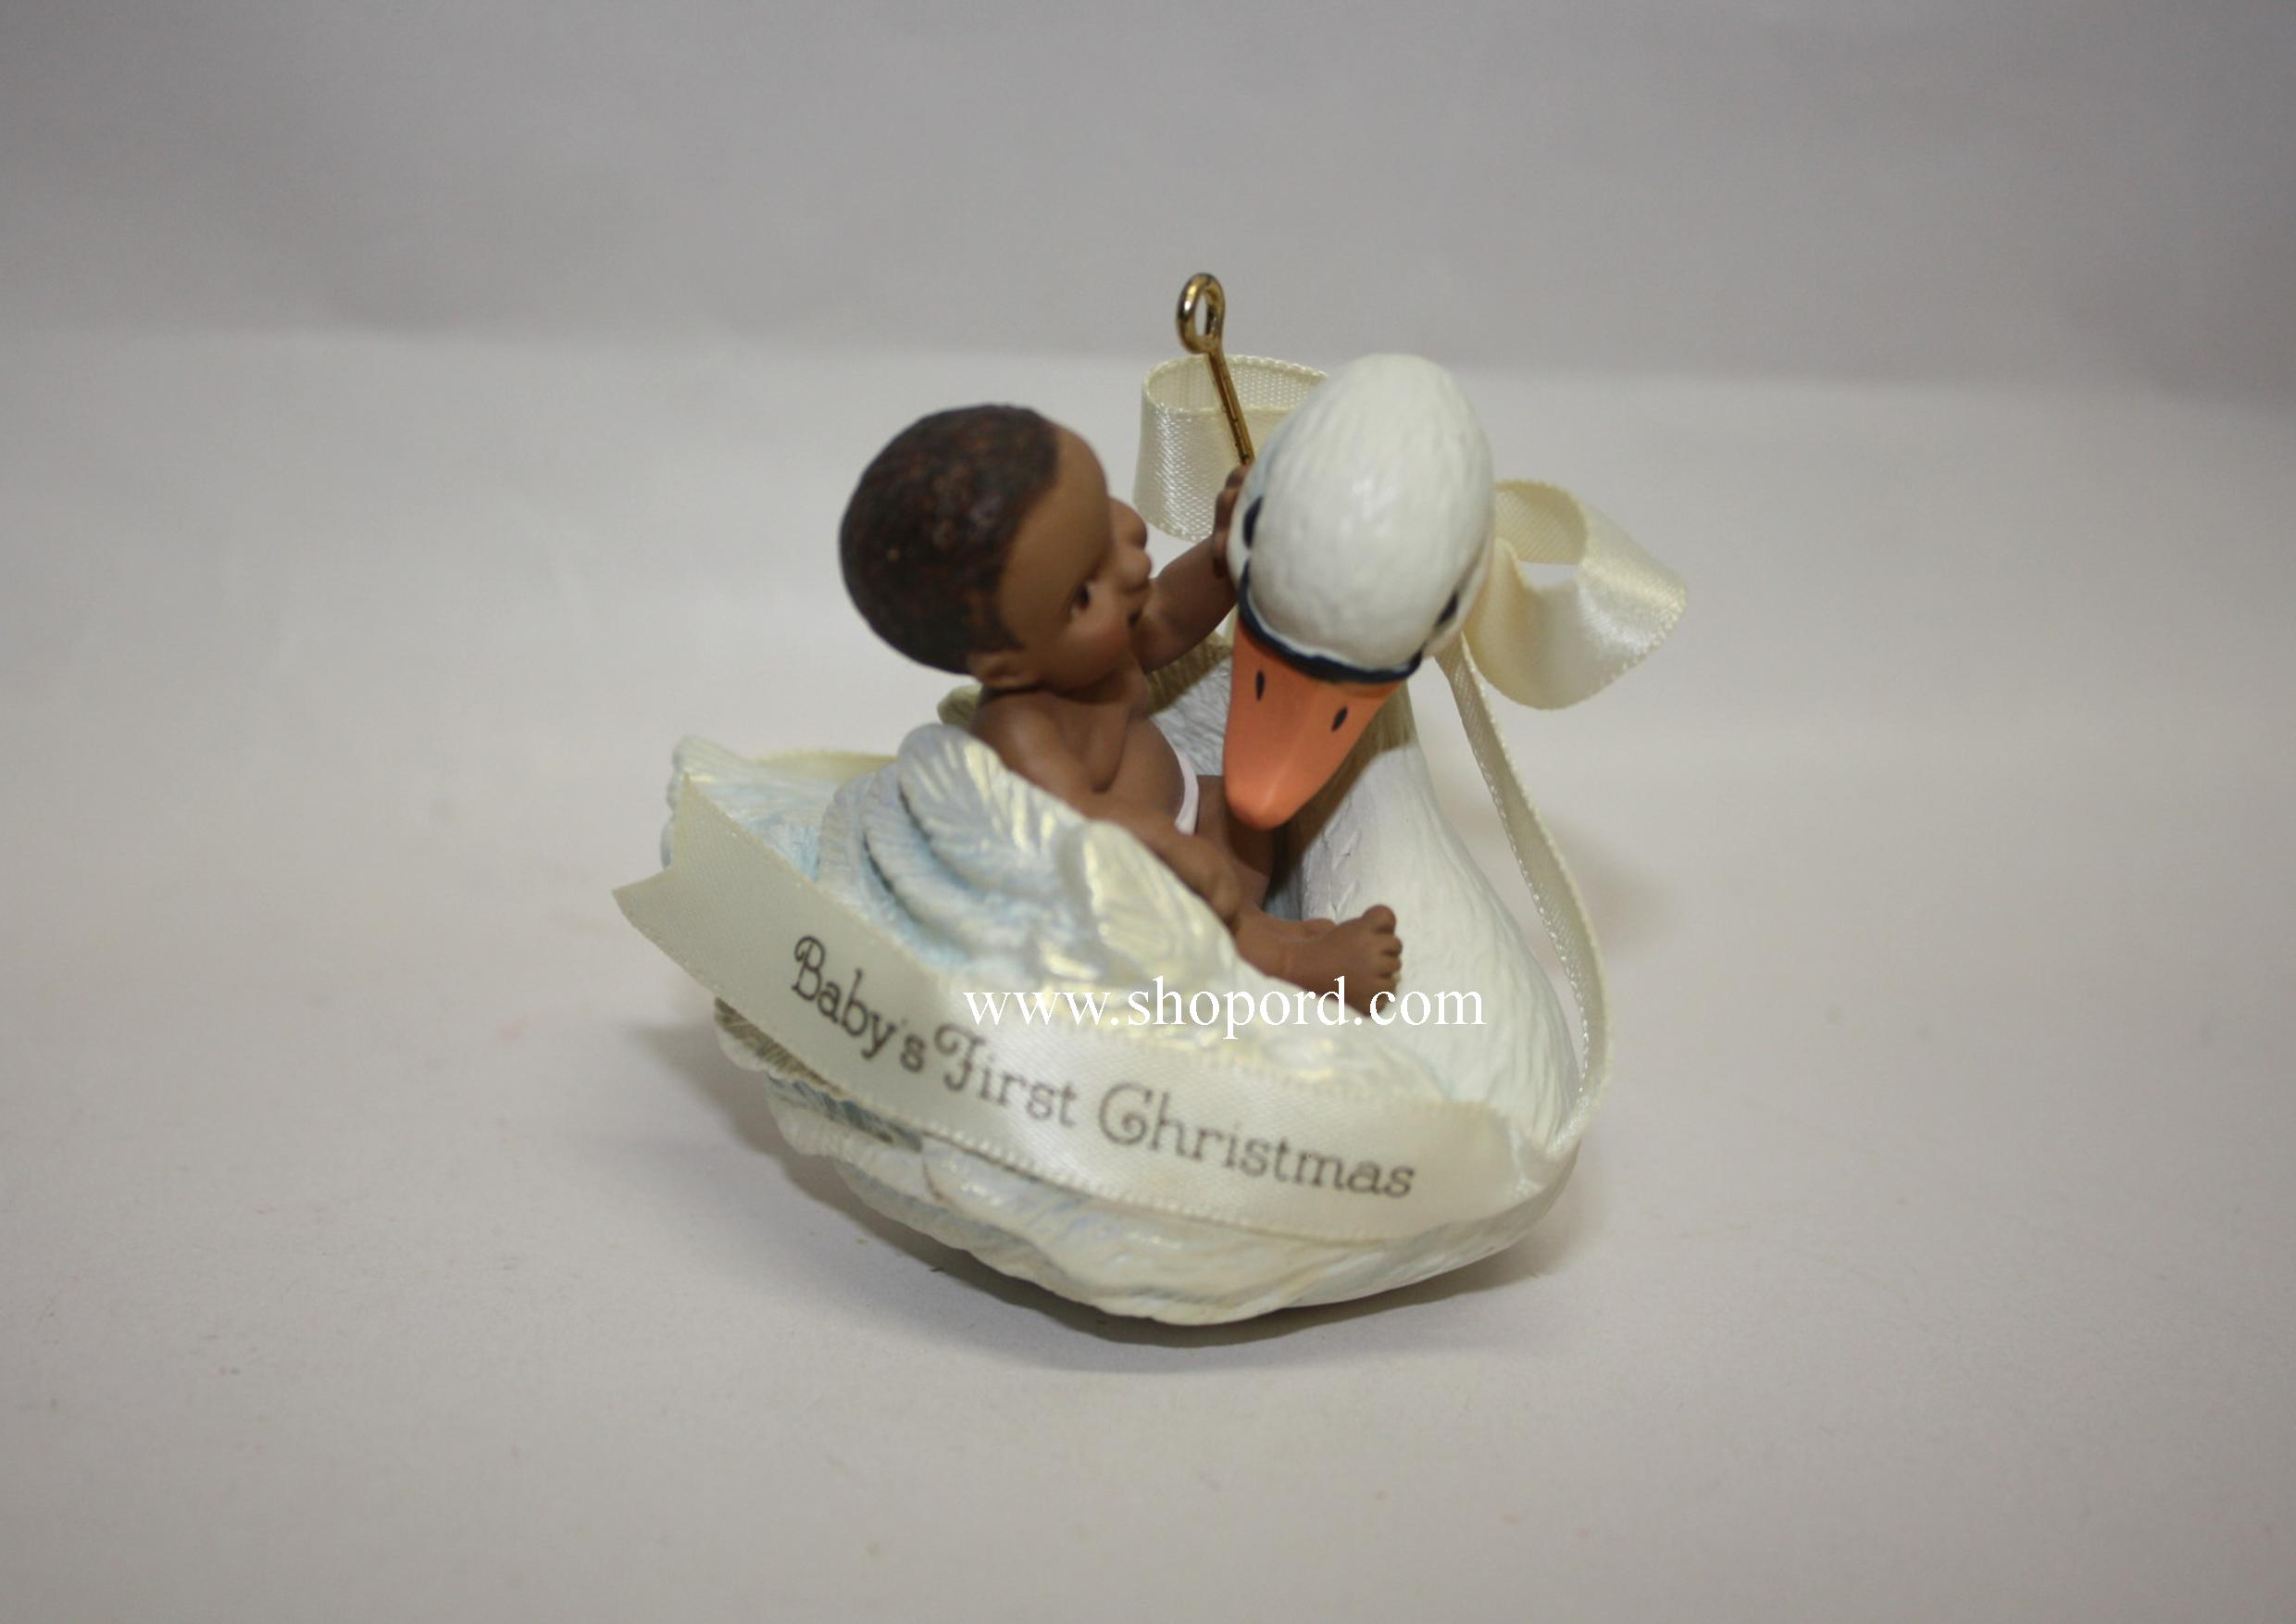 Hallmark 2005 Baby's First Christmas Ornament African American QXG4602